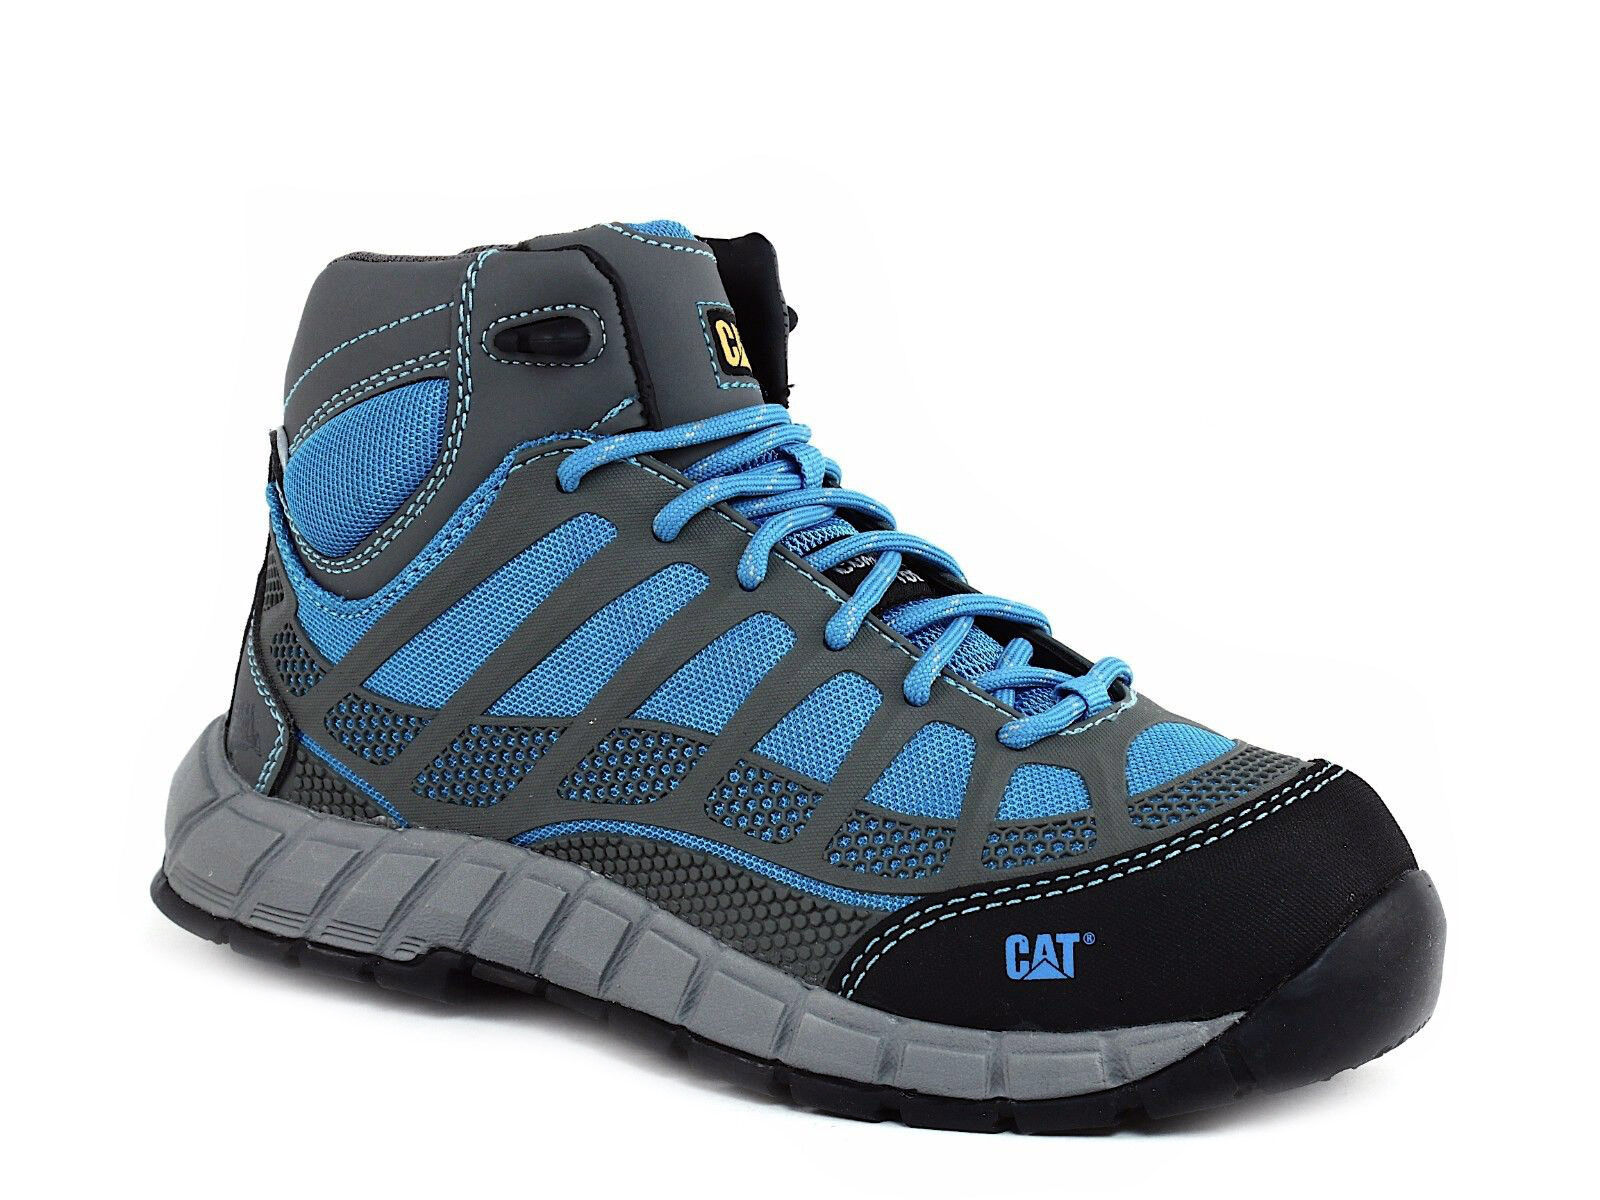 Caterpillar Work STREAMLINE MID WP Comp Safety Toe Damenschuhe Work Caterpillar Hiking Blau Grau Stiefel d3cc46